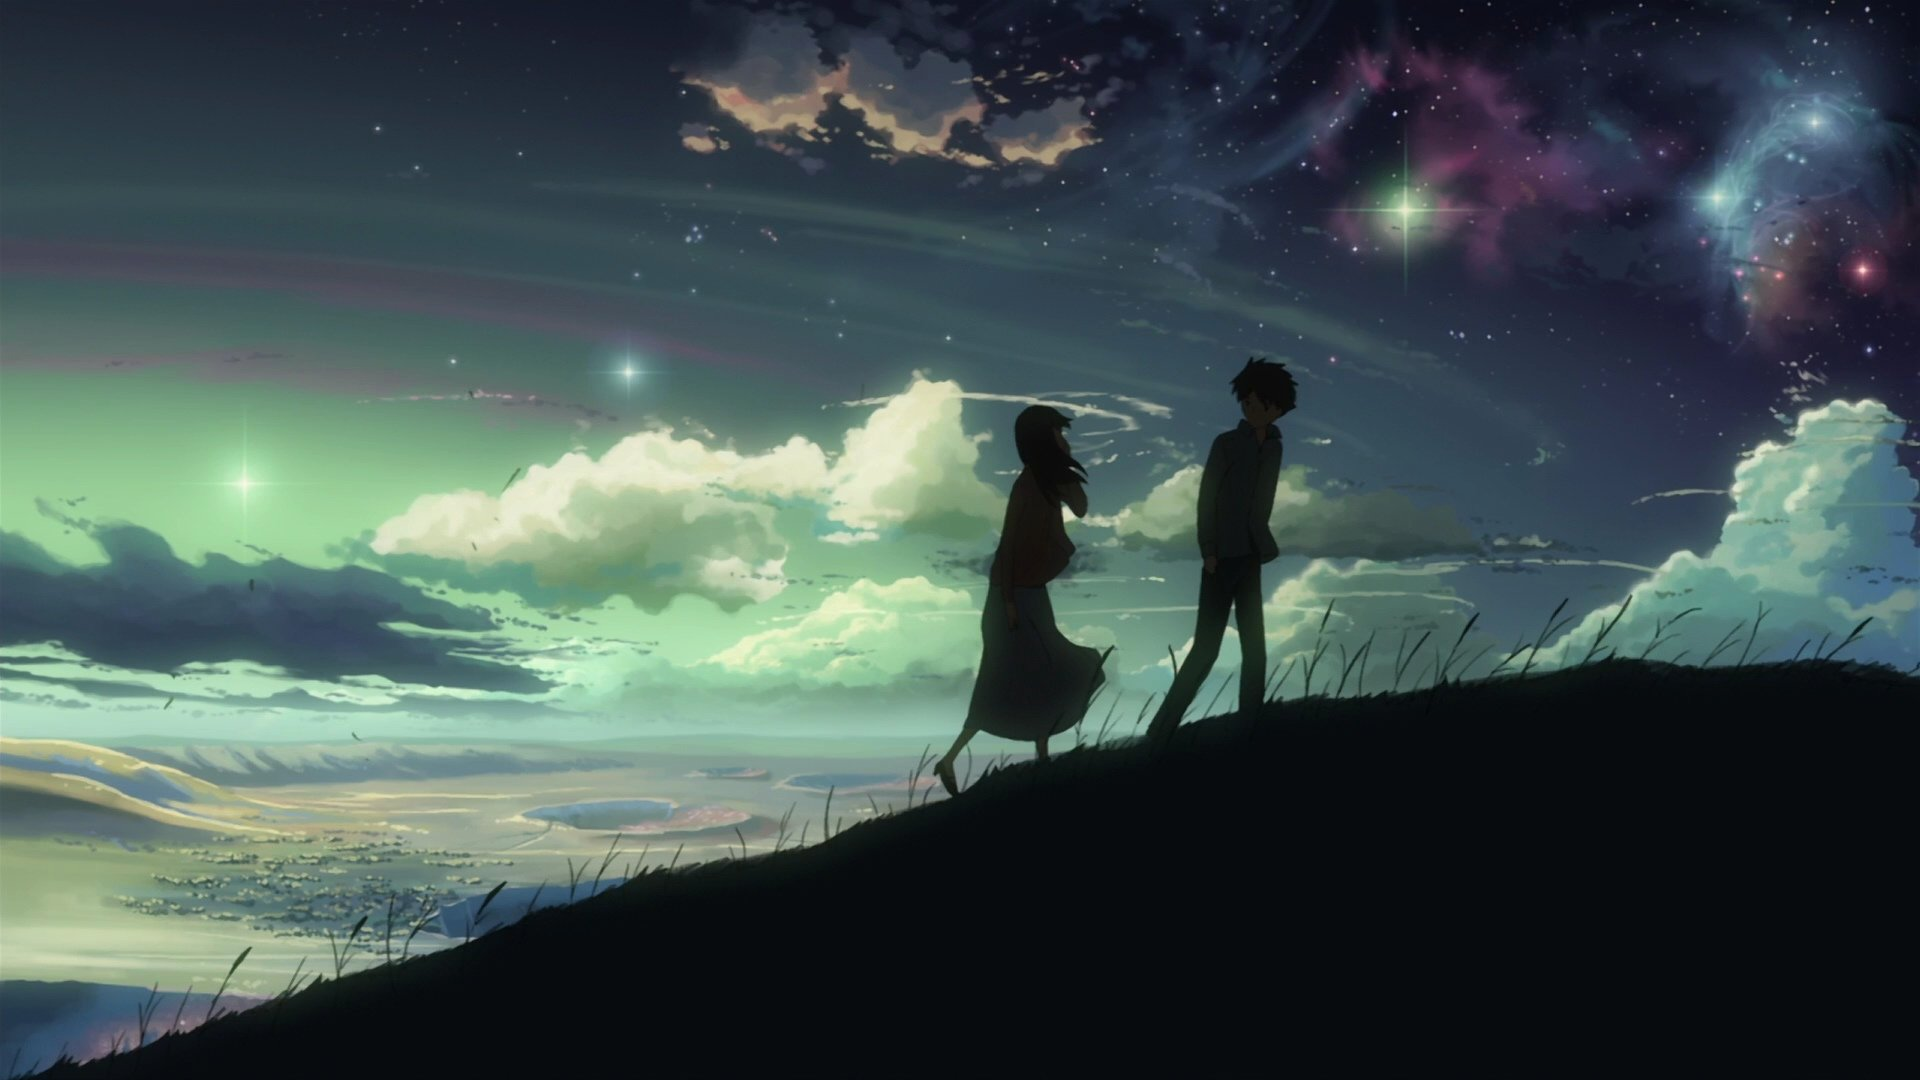 Hd wallpaper background image id804298 1920x1080 anime 5 centimeters per second